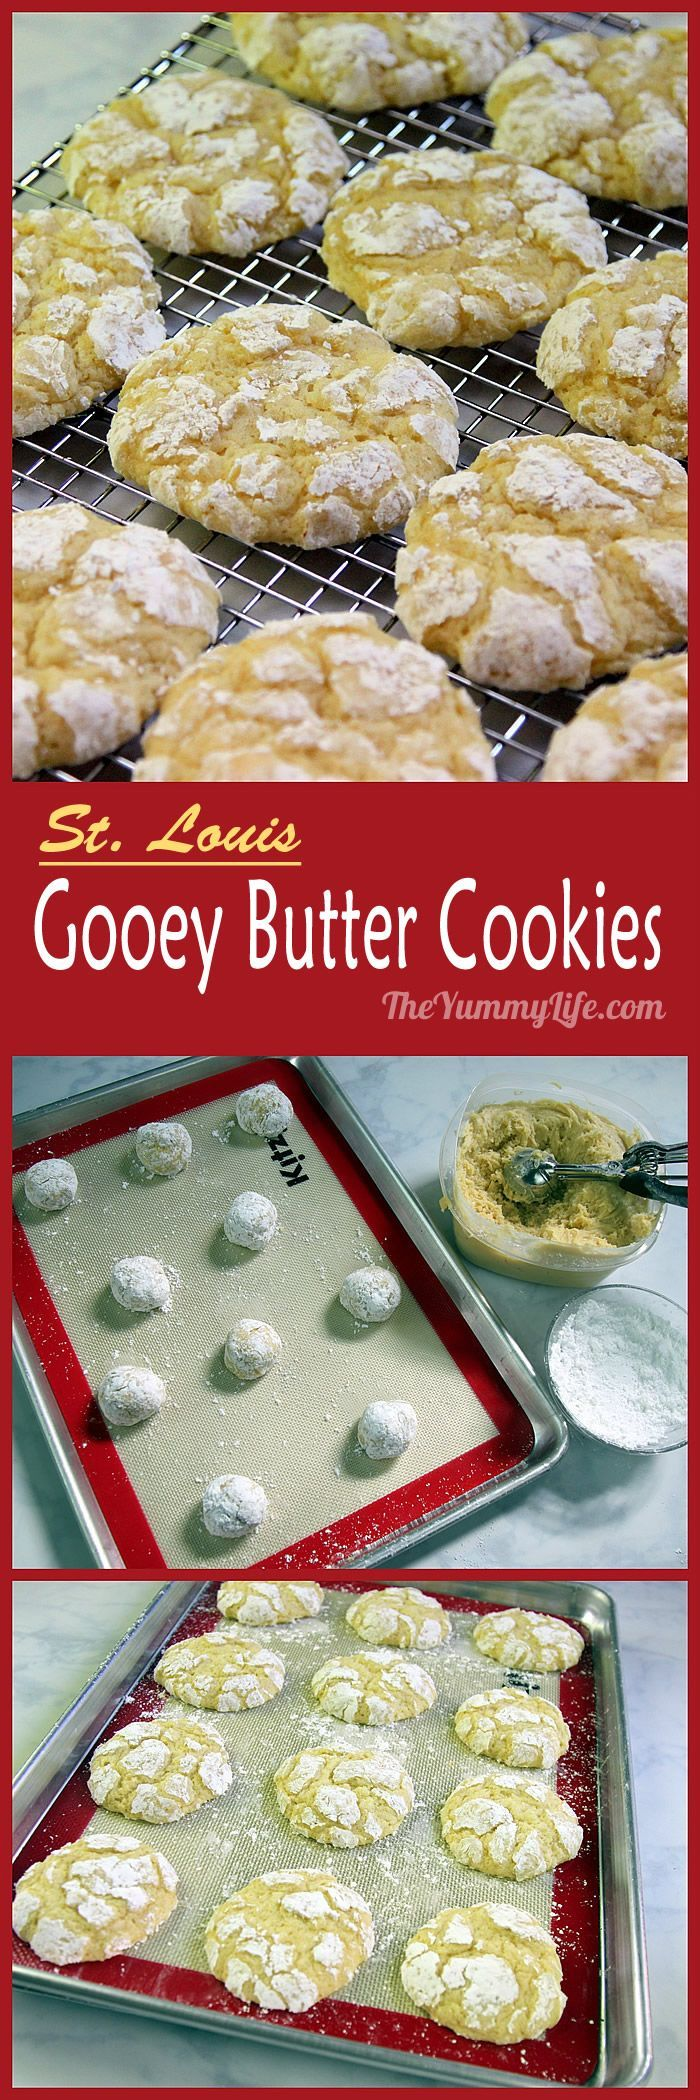 Inspired by the popular St. Louis Gooey Butter Cake, this recipe has the same taste in a melt-in-your-mouth soft cookie made completely from scratch (no yellow cake mix!). From TheYummyLife.com